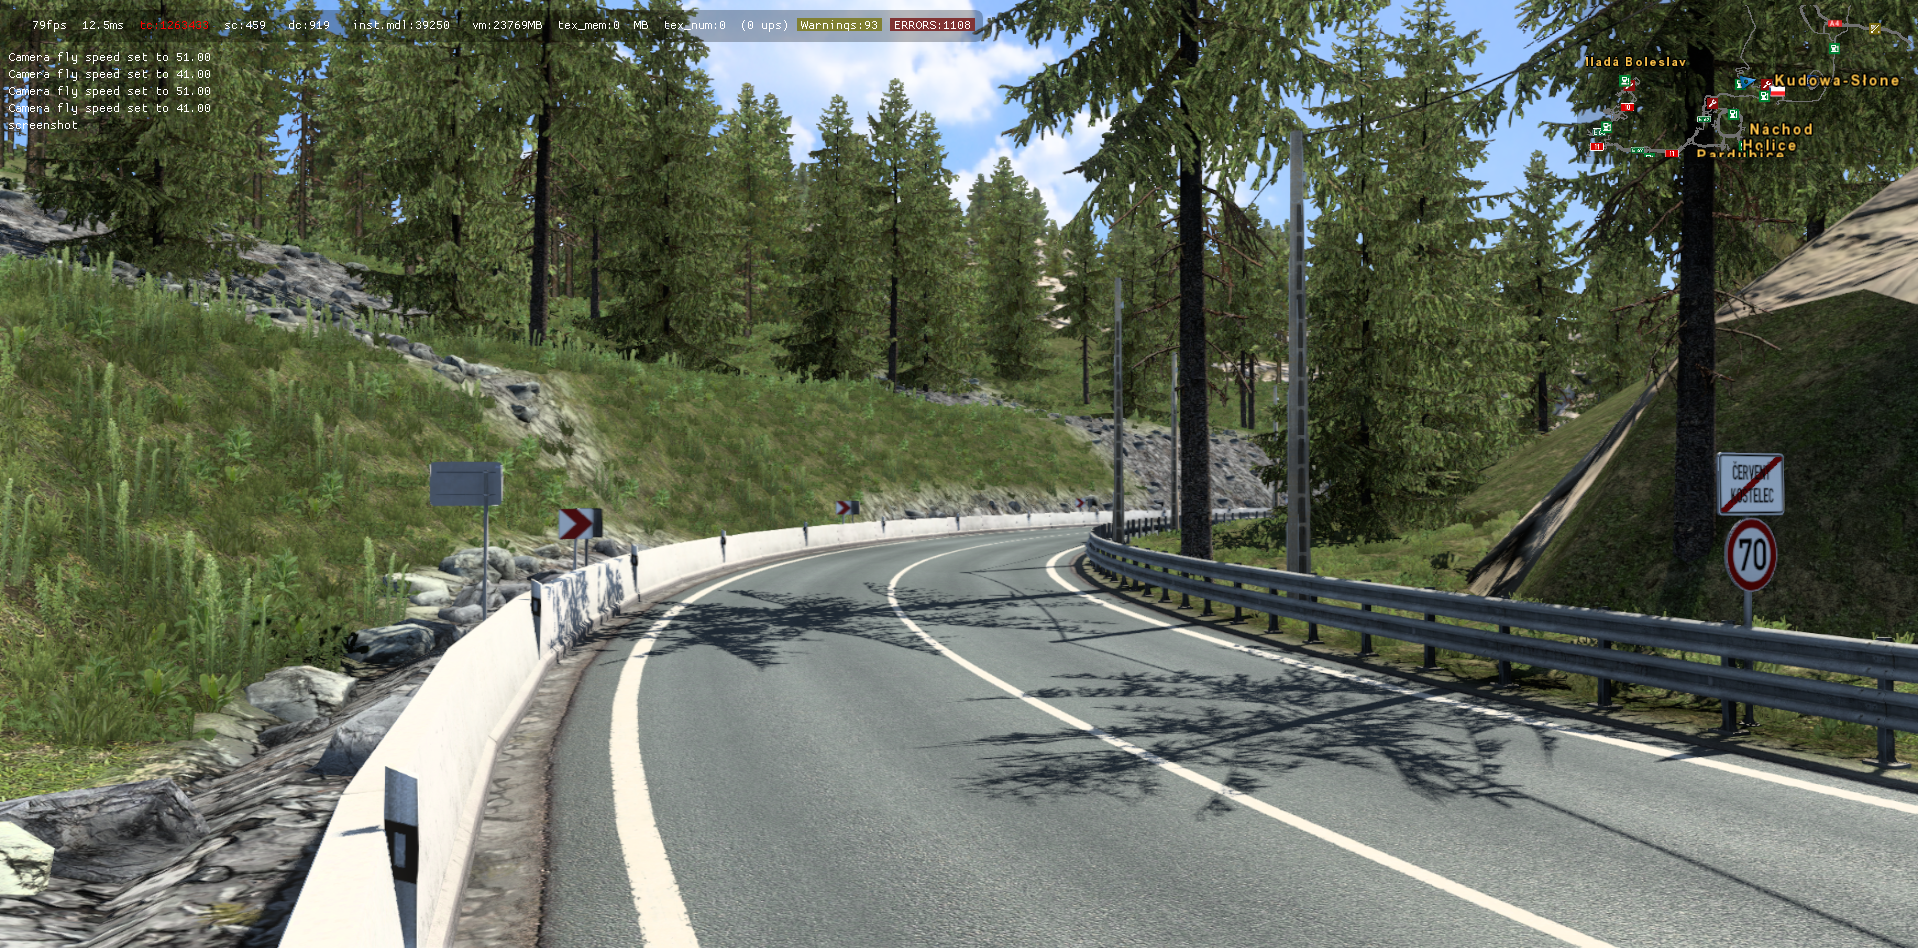 ets2_20210921_203055_00.png